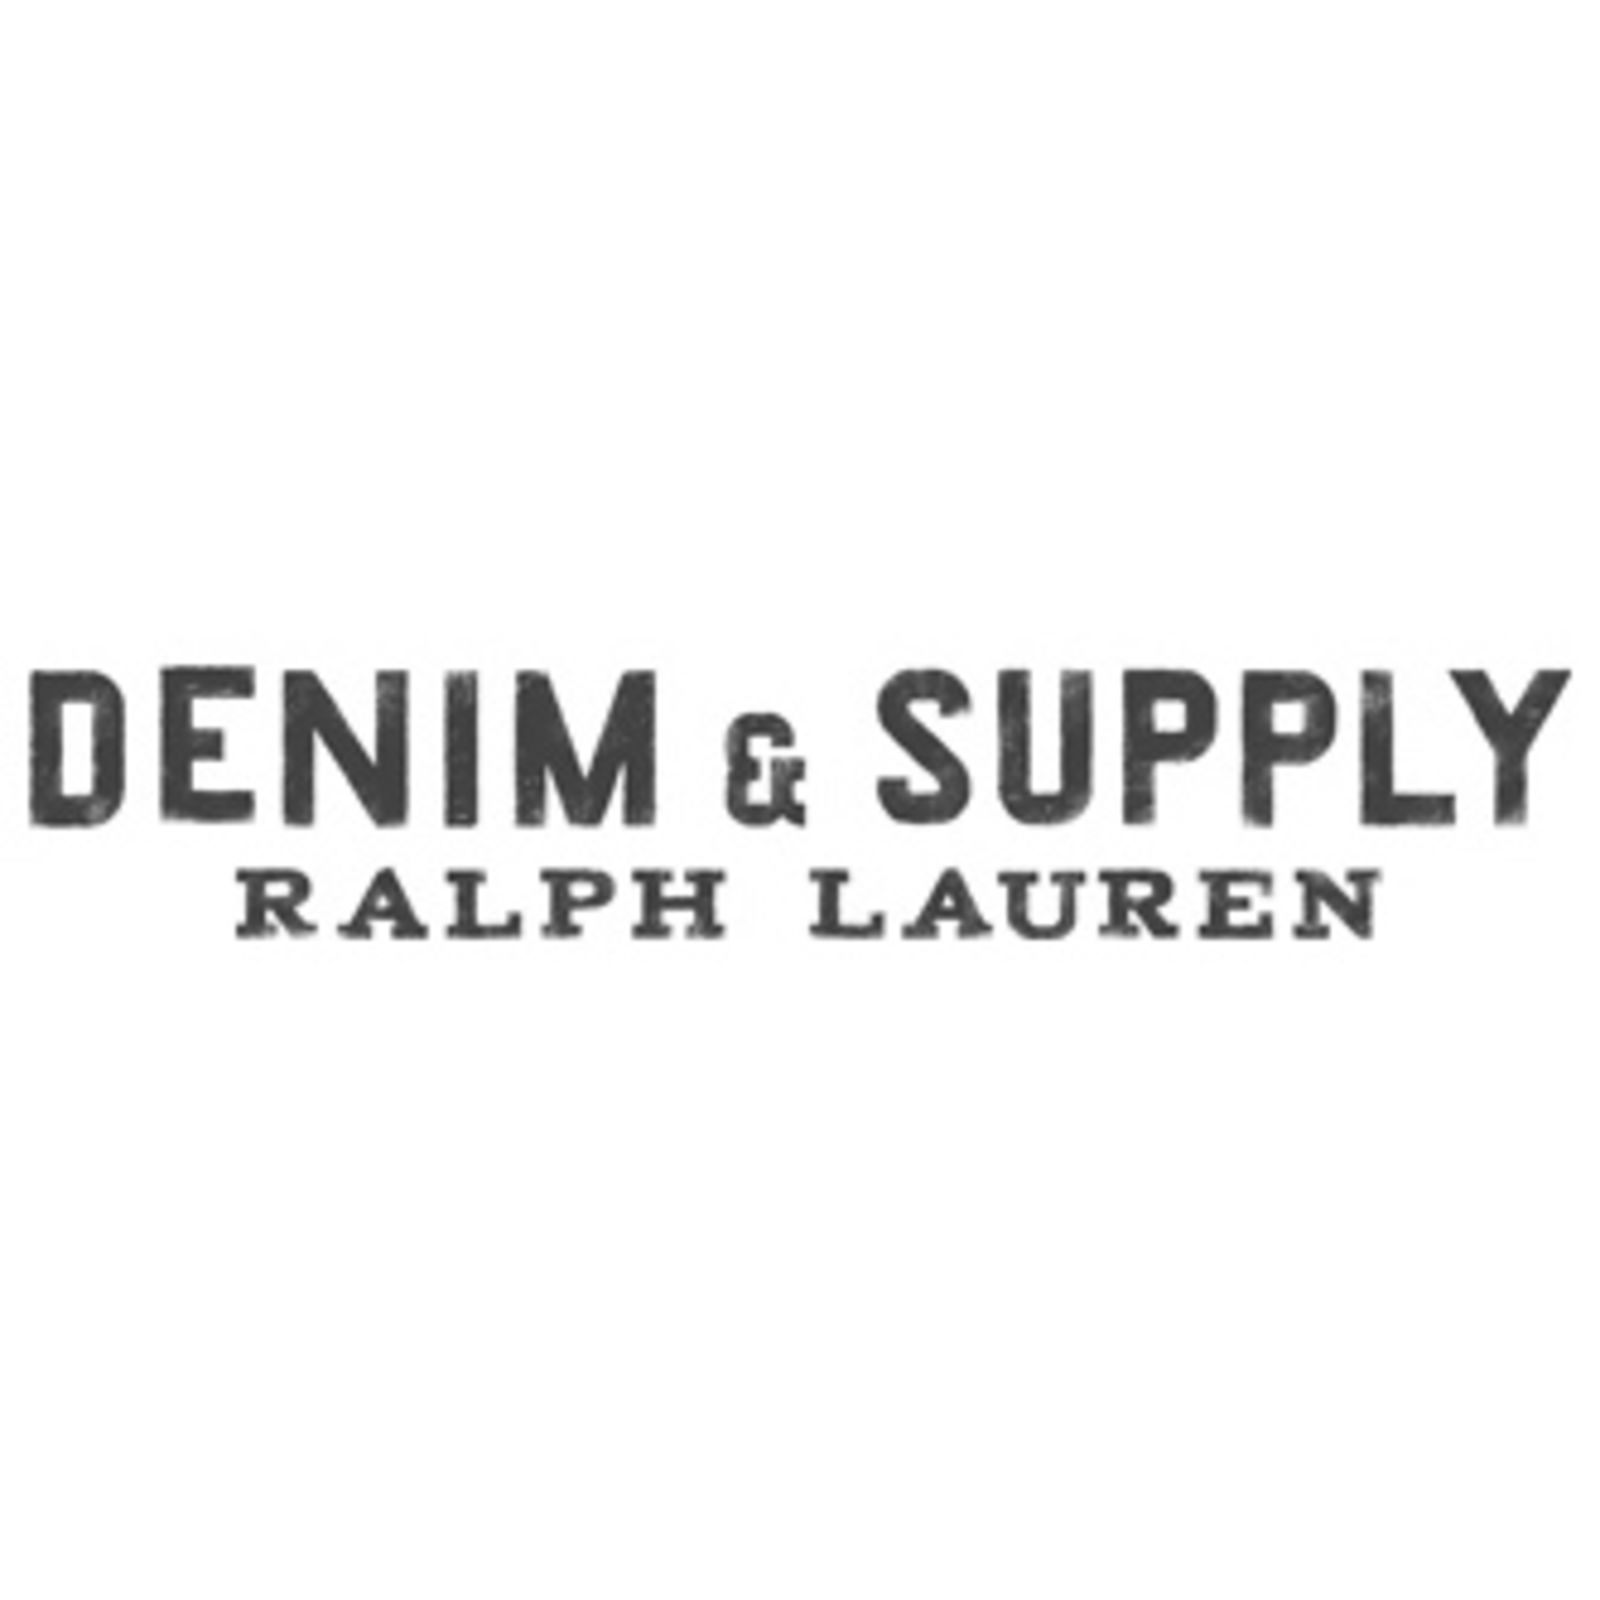 DENIM & SUPPLY (Image 1)